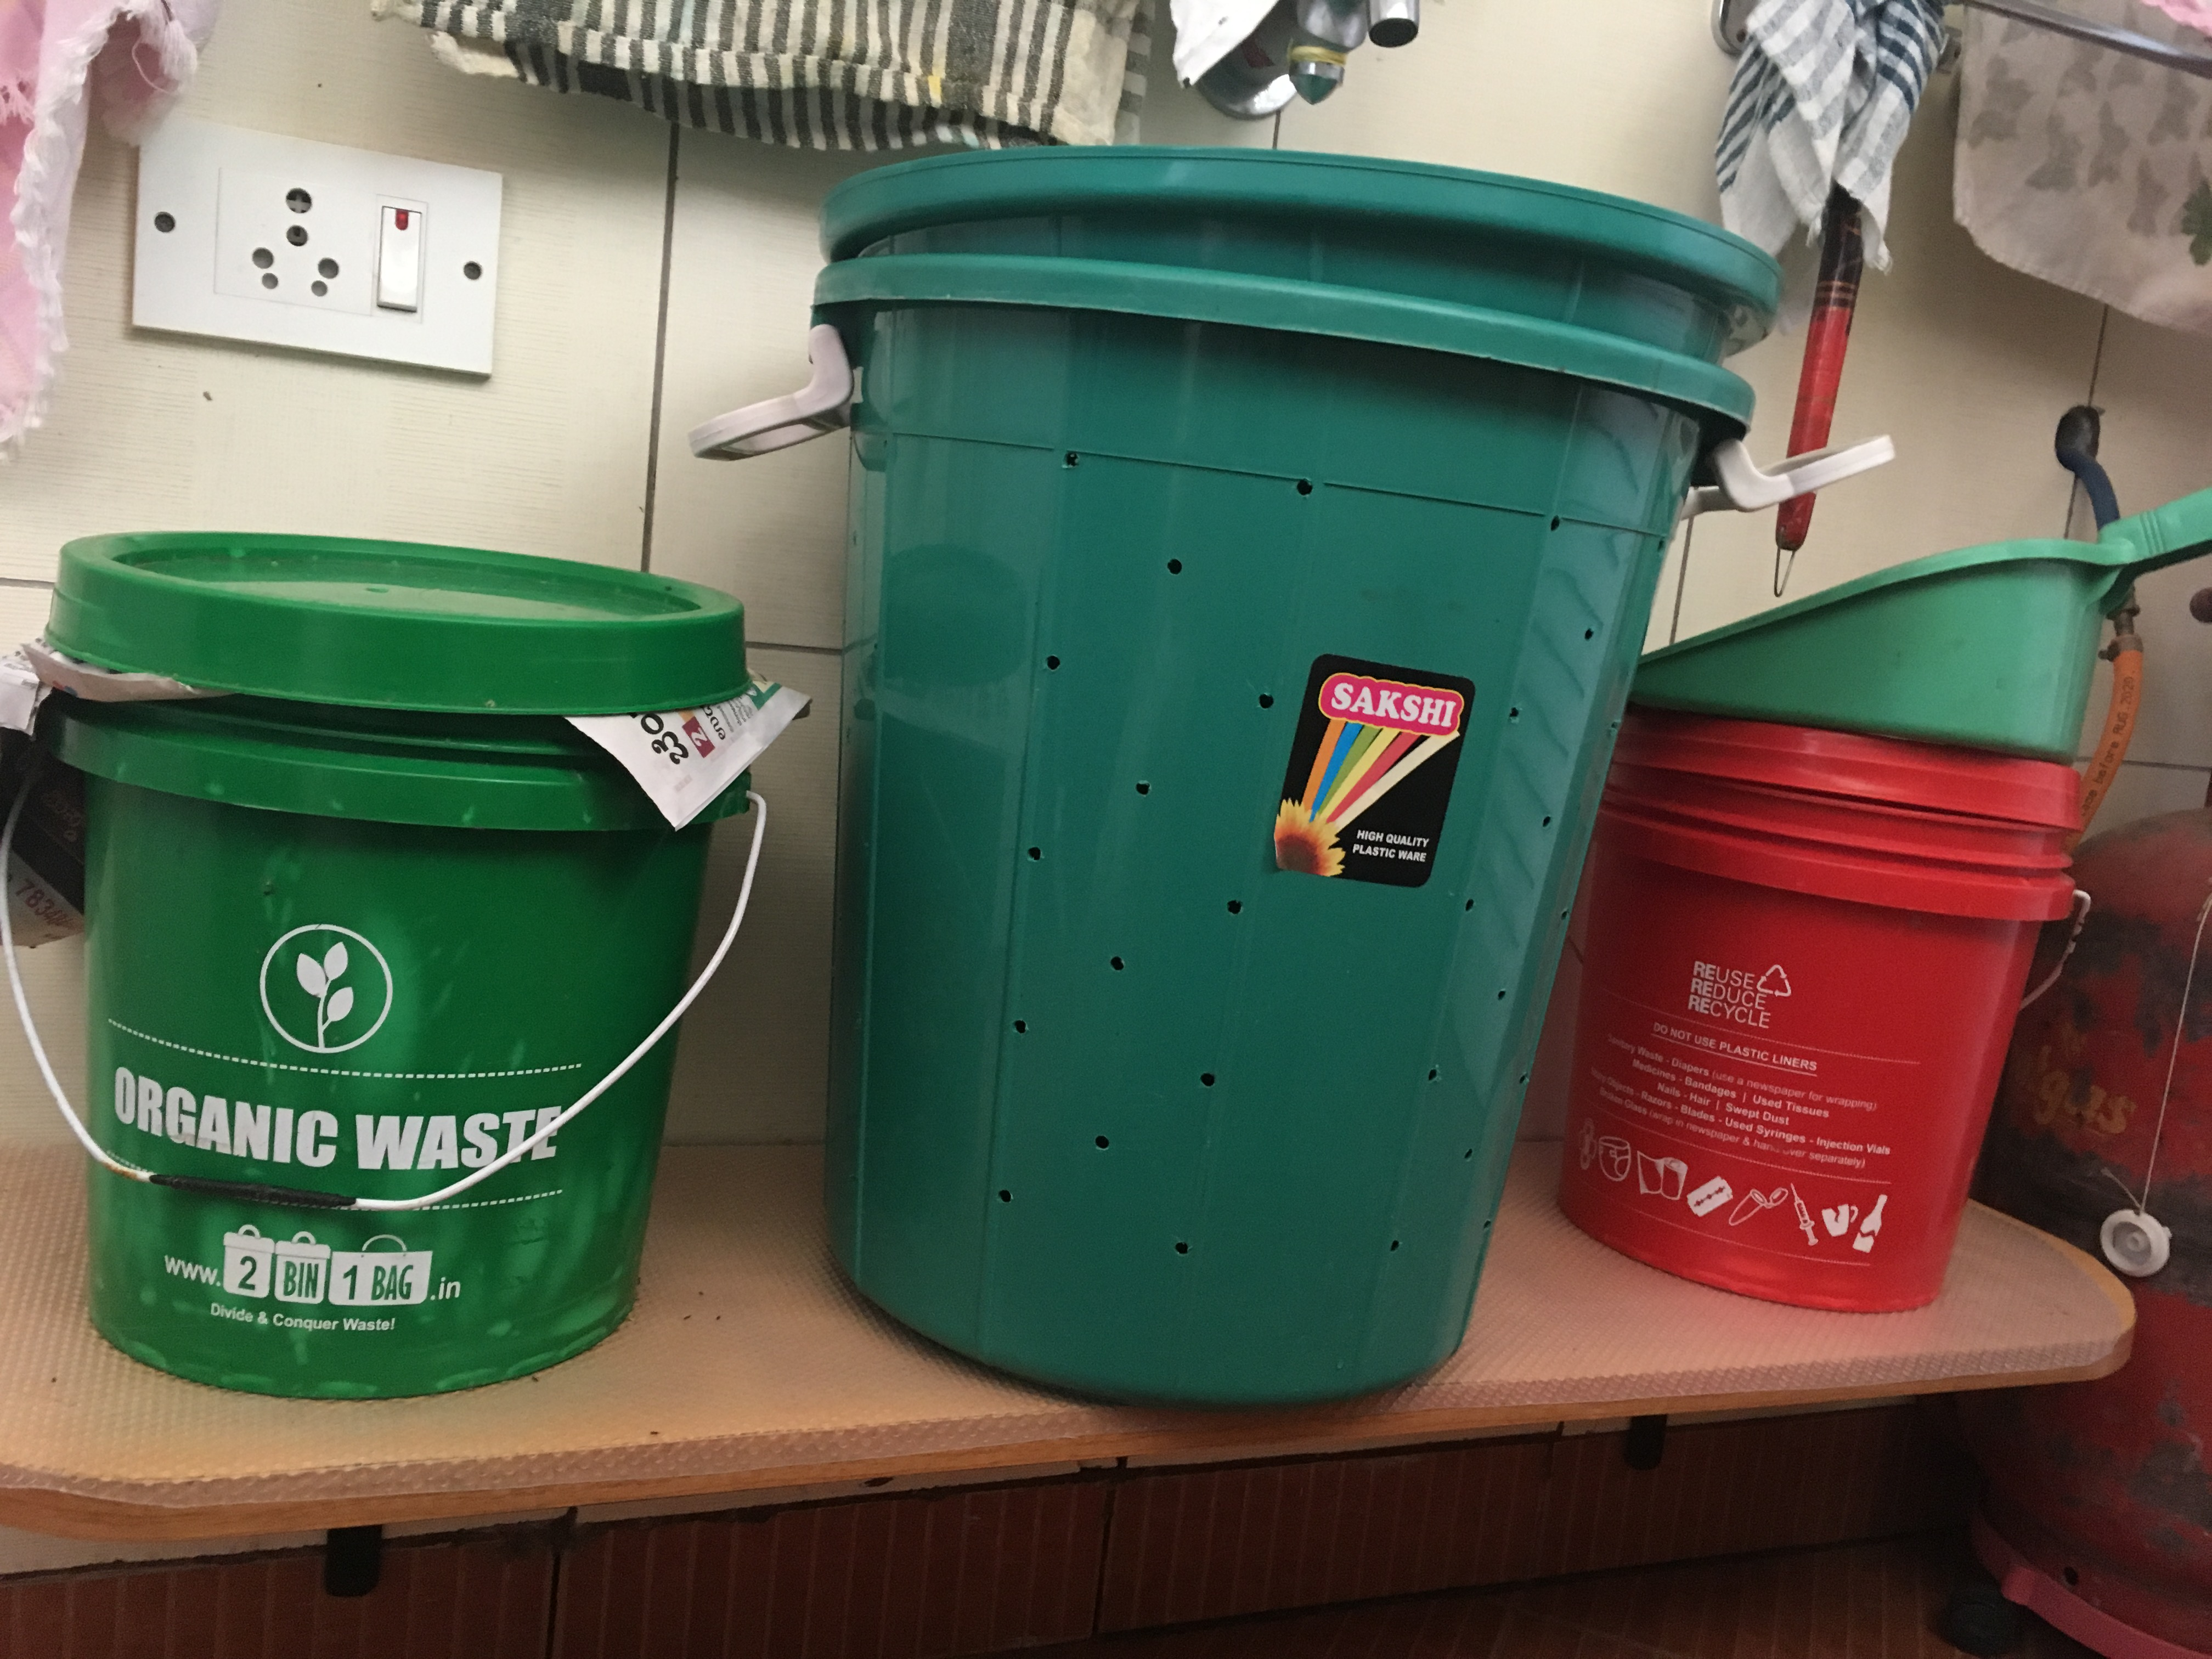 Large bins in green colour and one in red on the side.